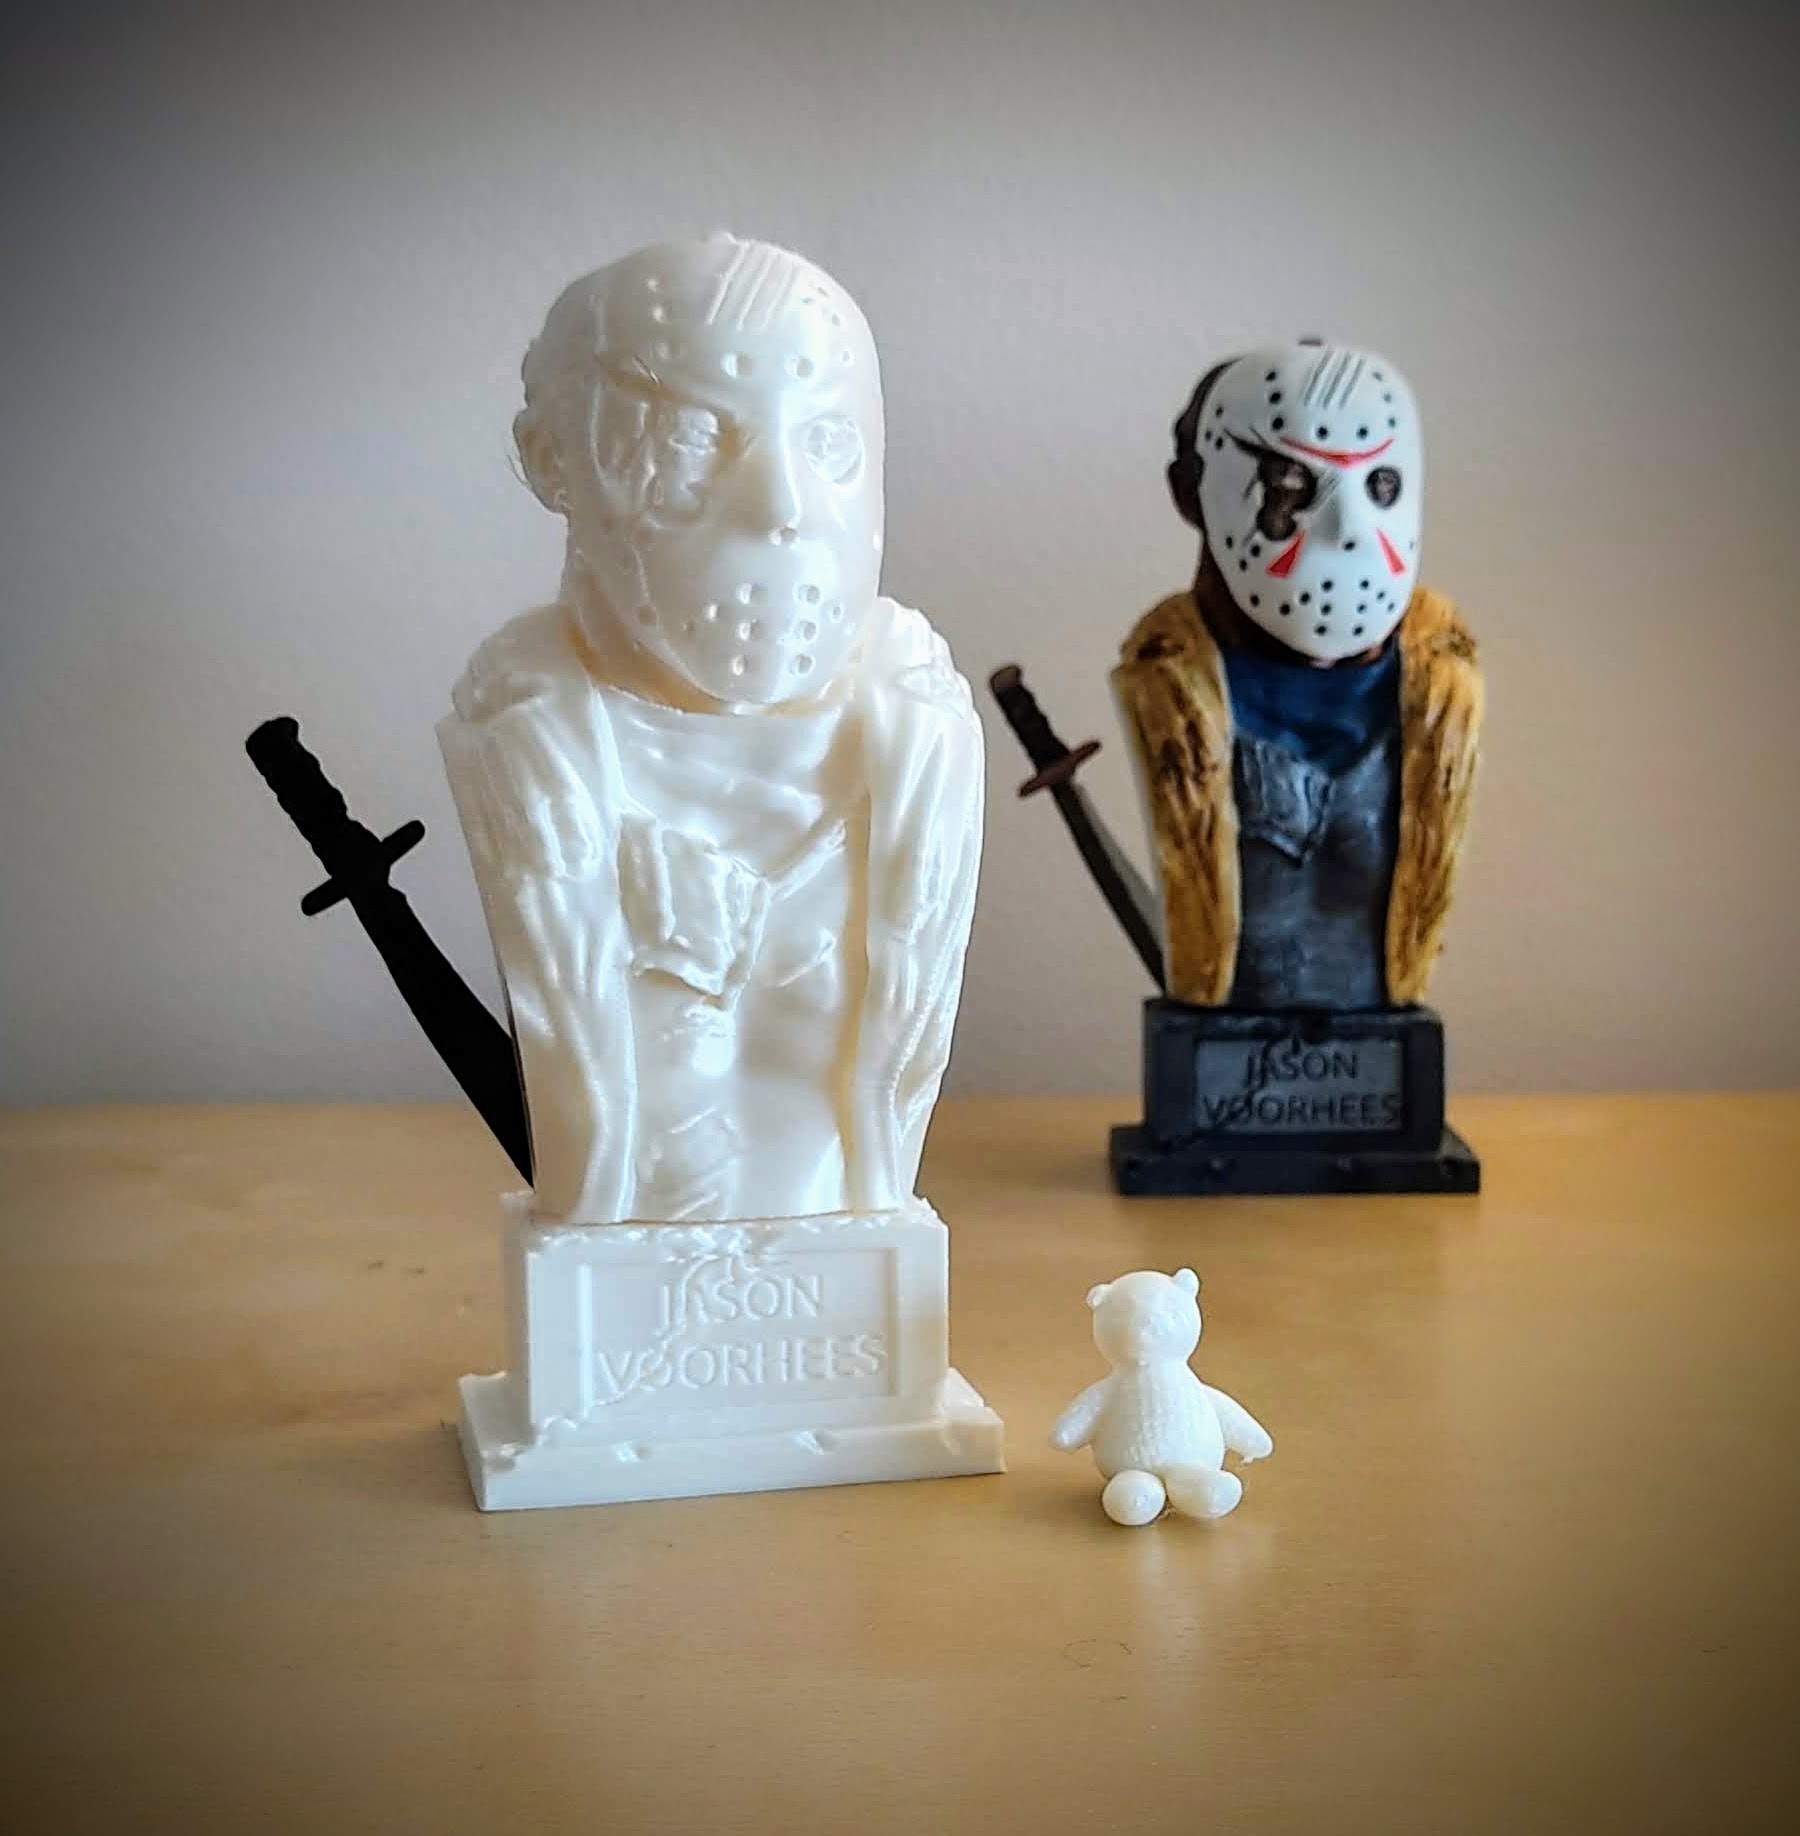 IMG_20201115_114839.jpg Download STL file Jason Voorhees: Bust for 3D printing • 3D printable model, AntonioPugliese